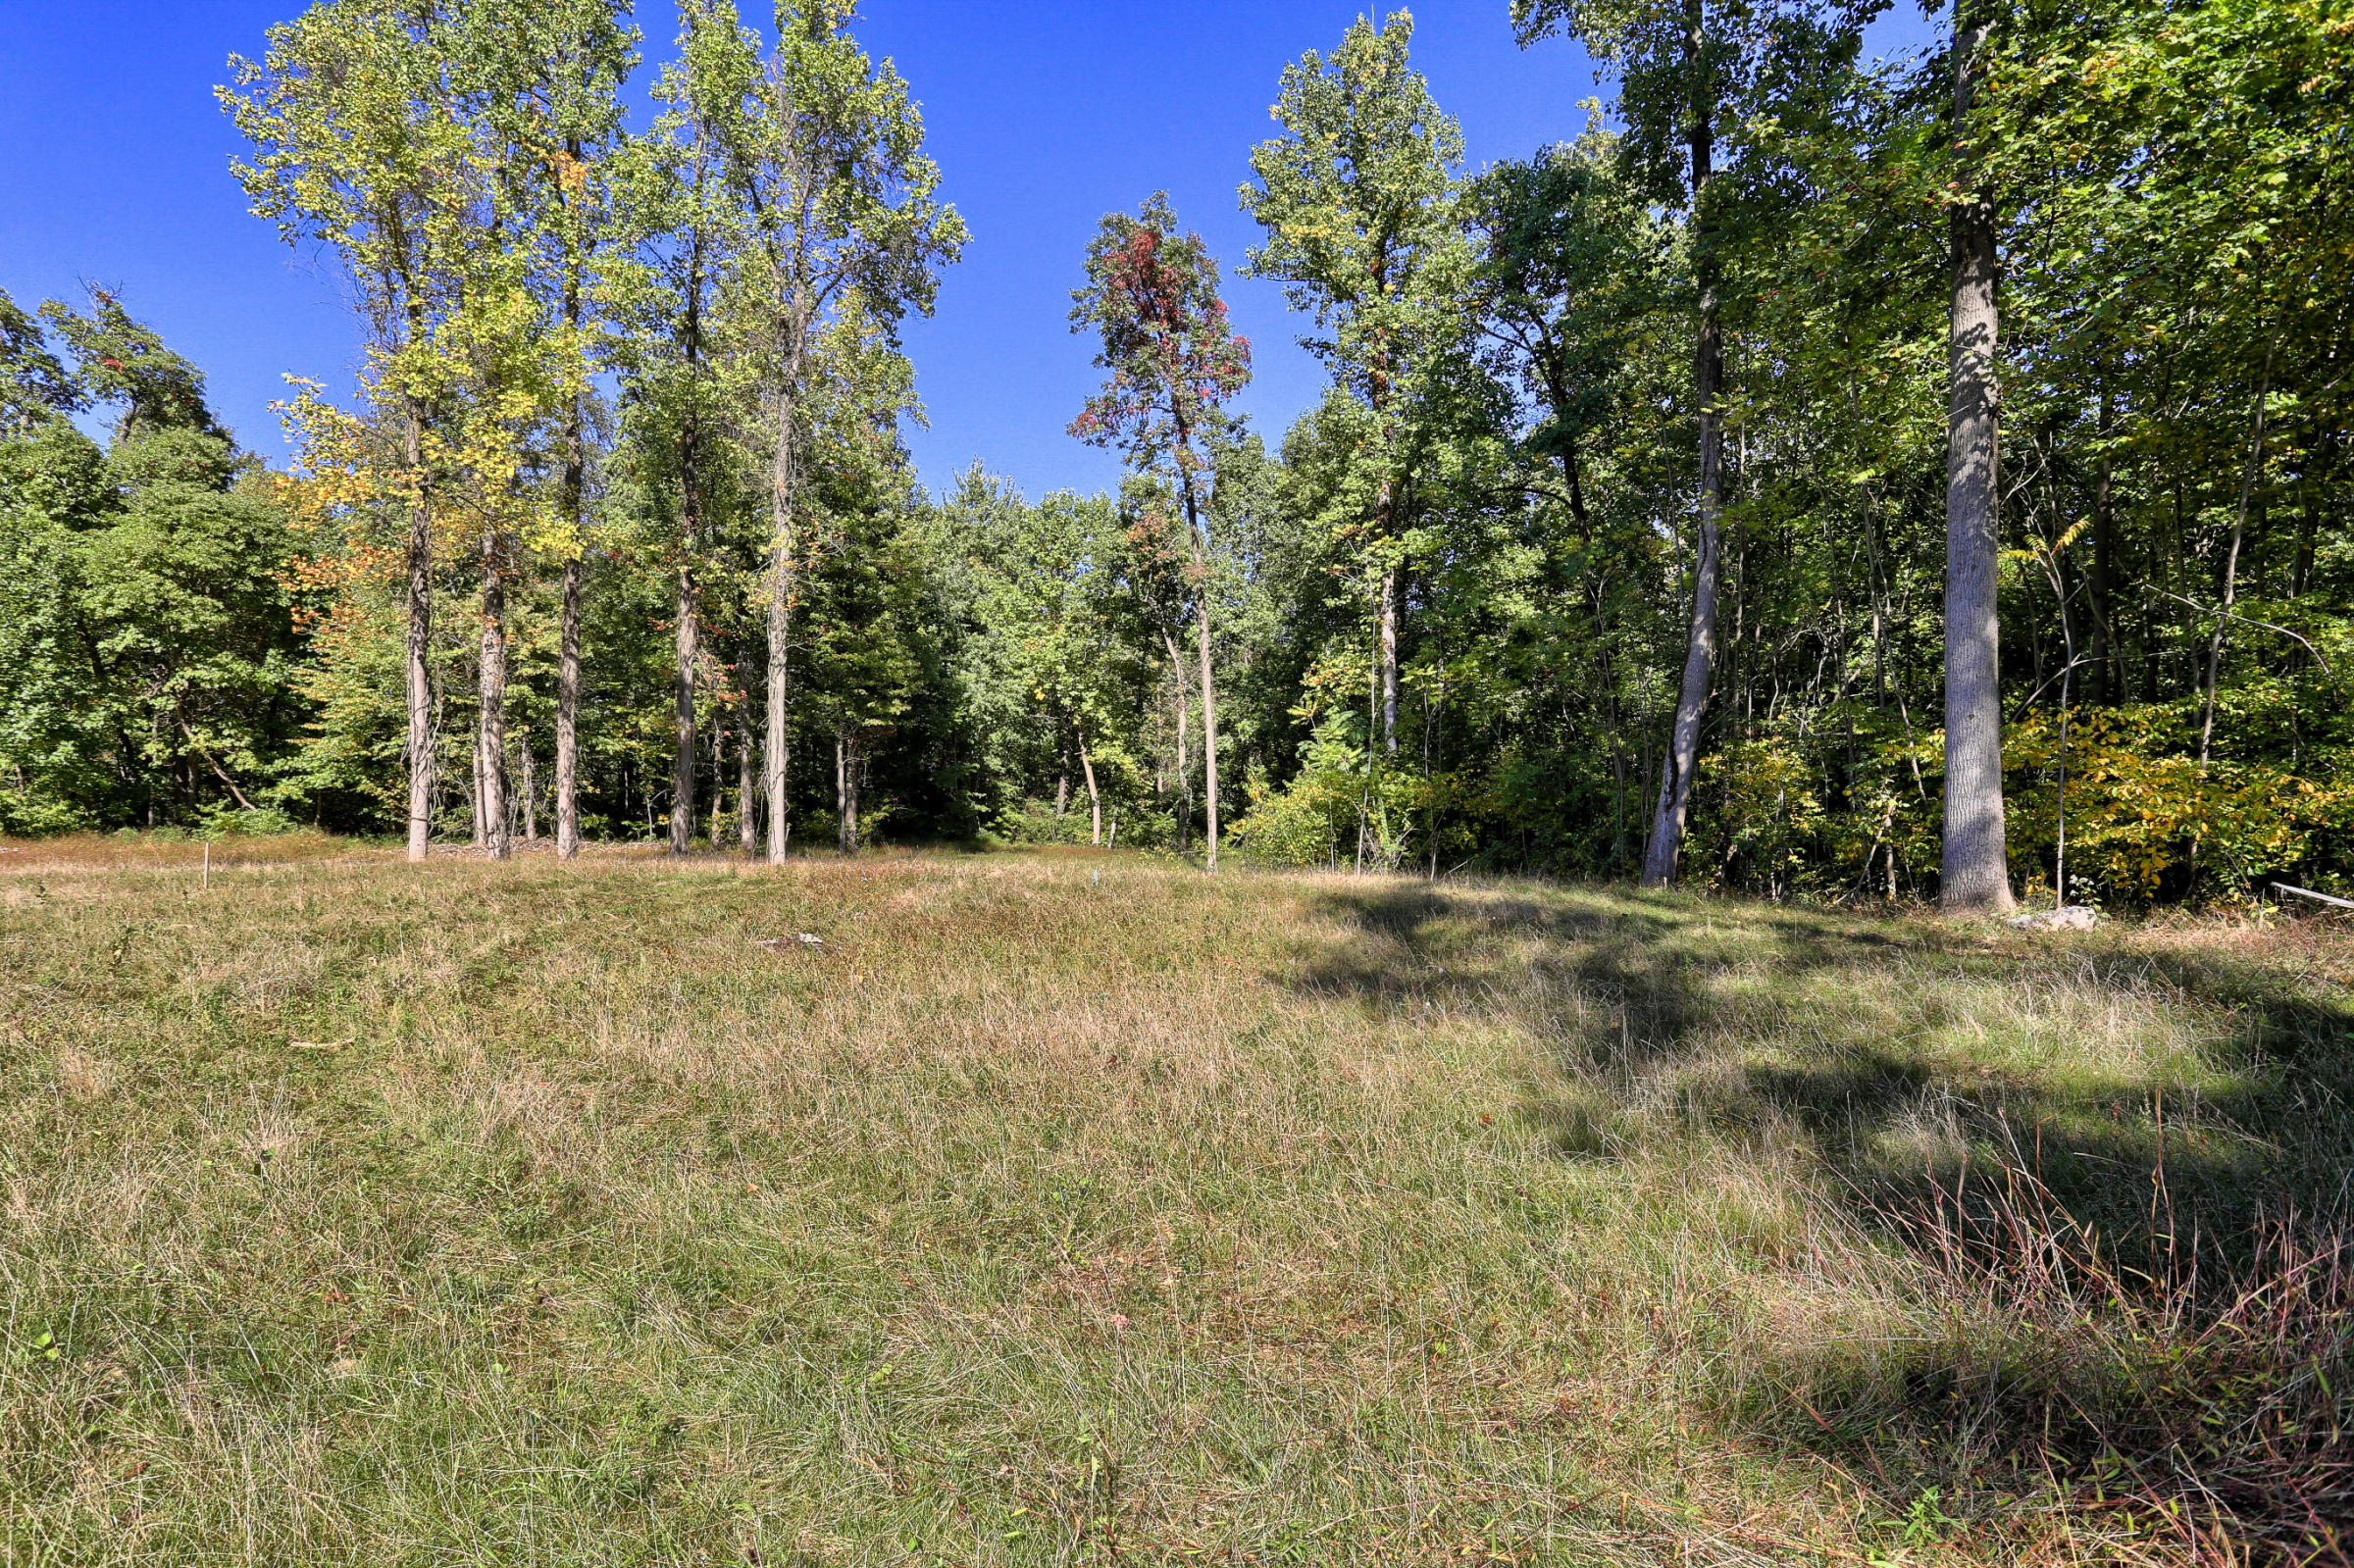 Land for Sale at Hilldale Estates 63 Hilldale Road lot 9 Pequea, Pennsylvania 17565 United States